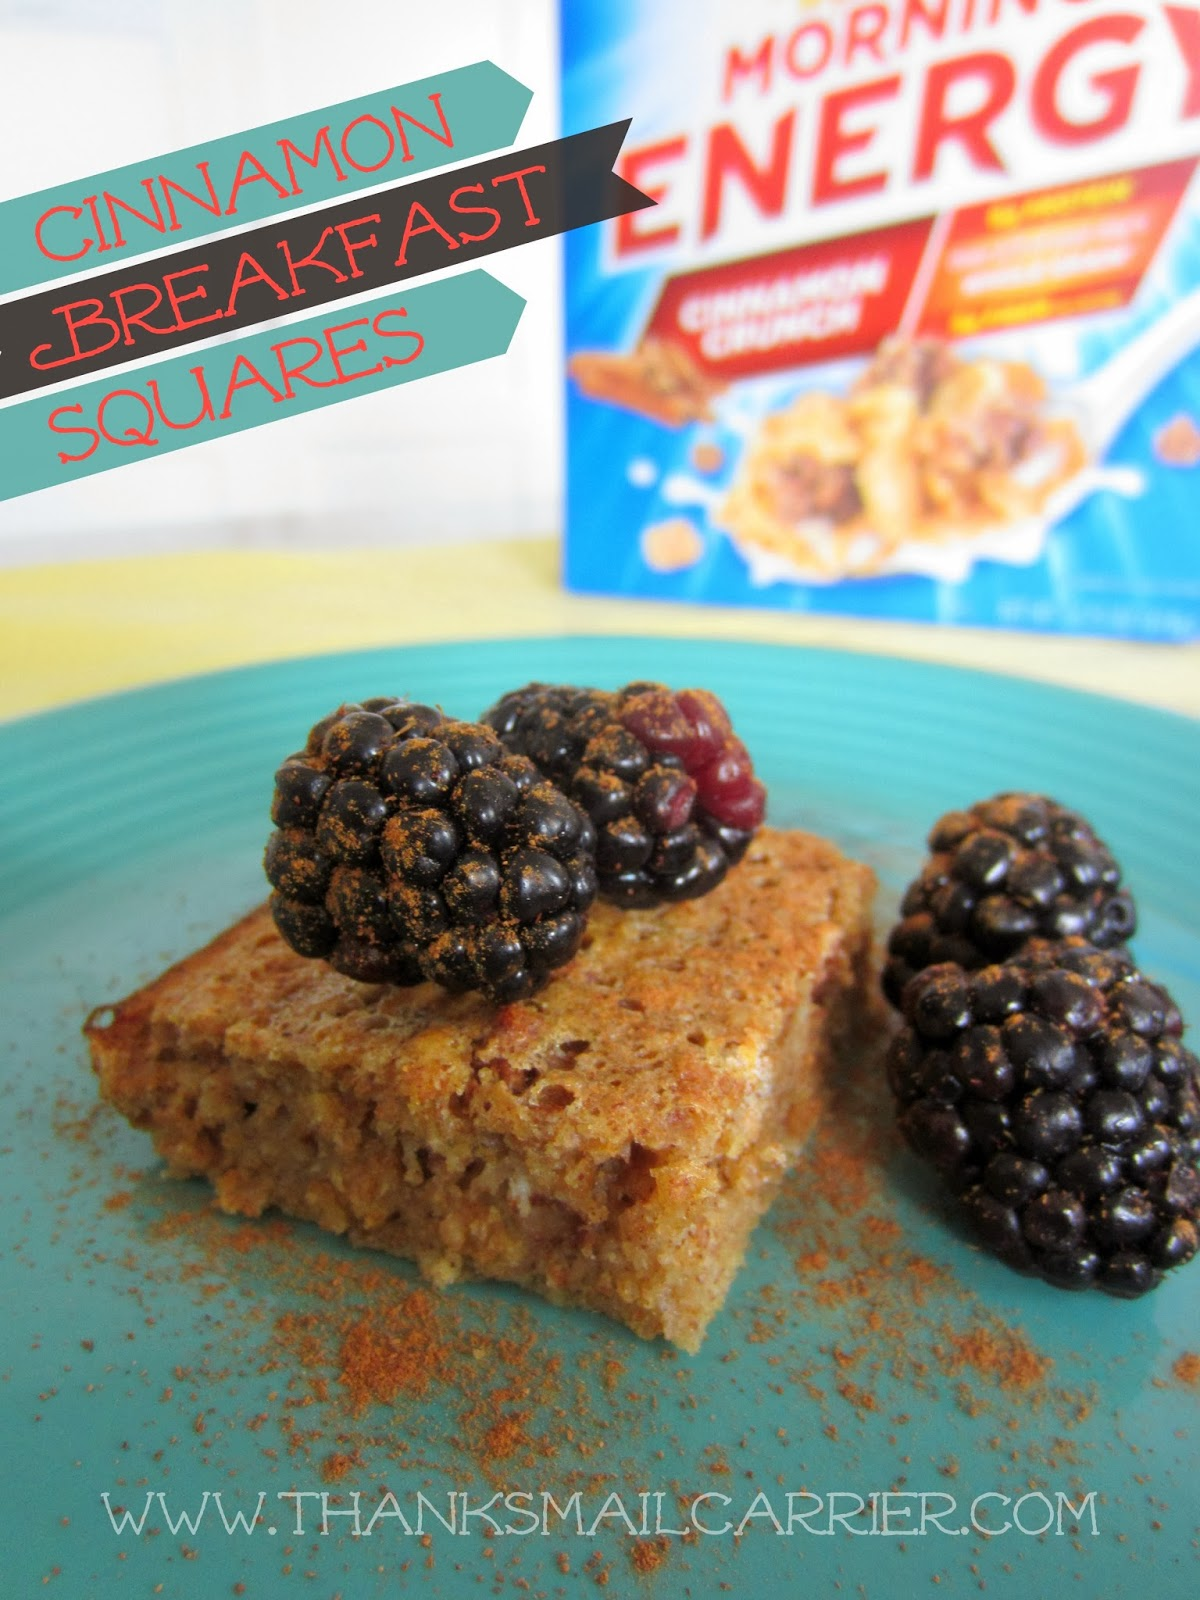 Cinnamon breakfast bars recipe